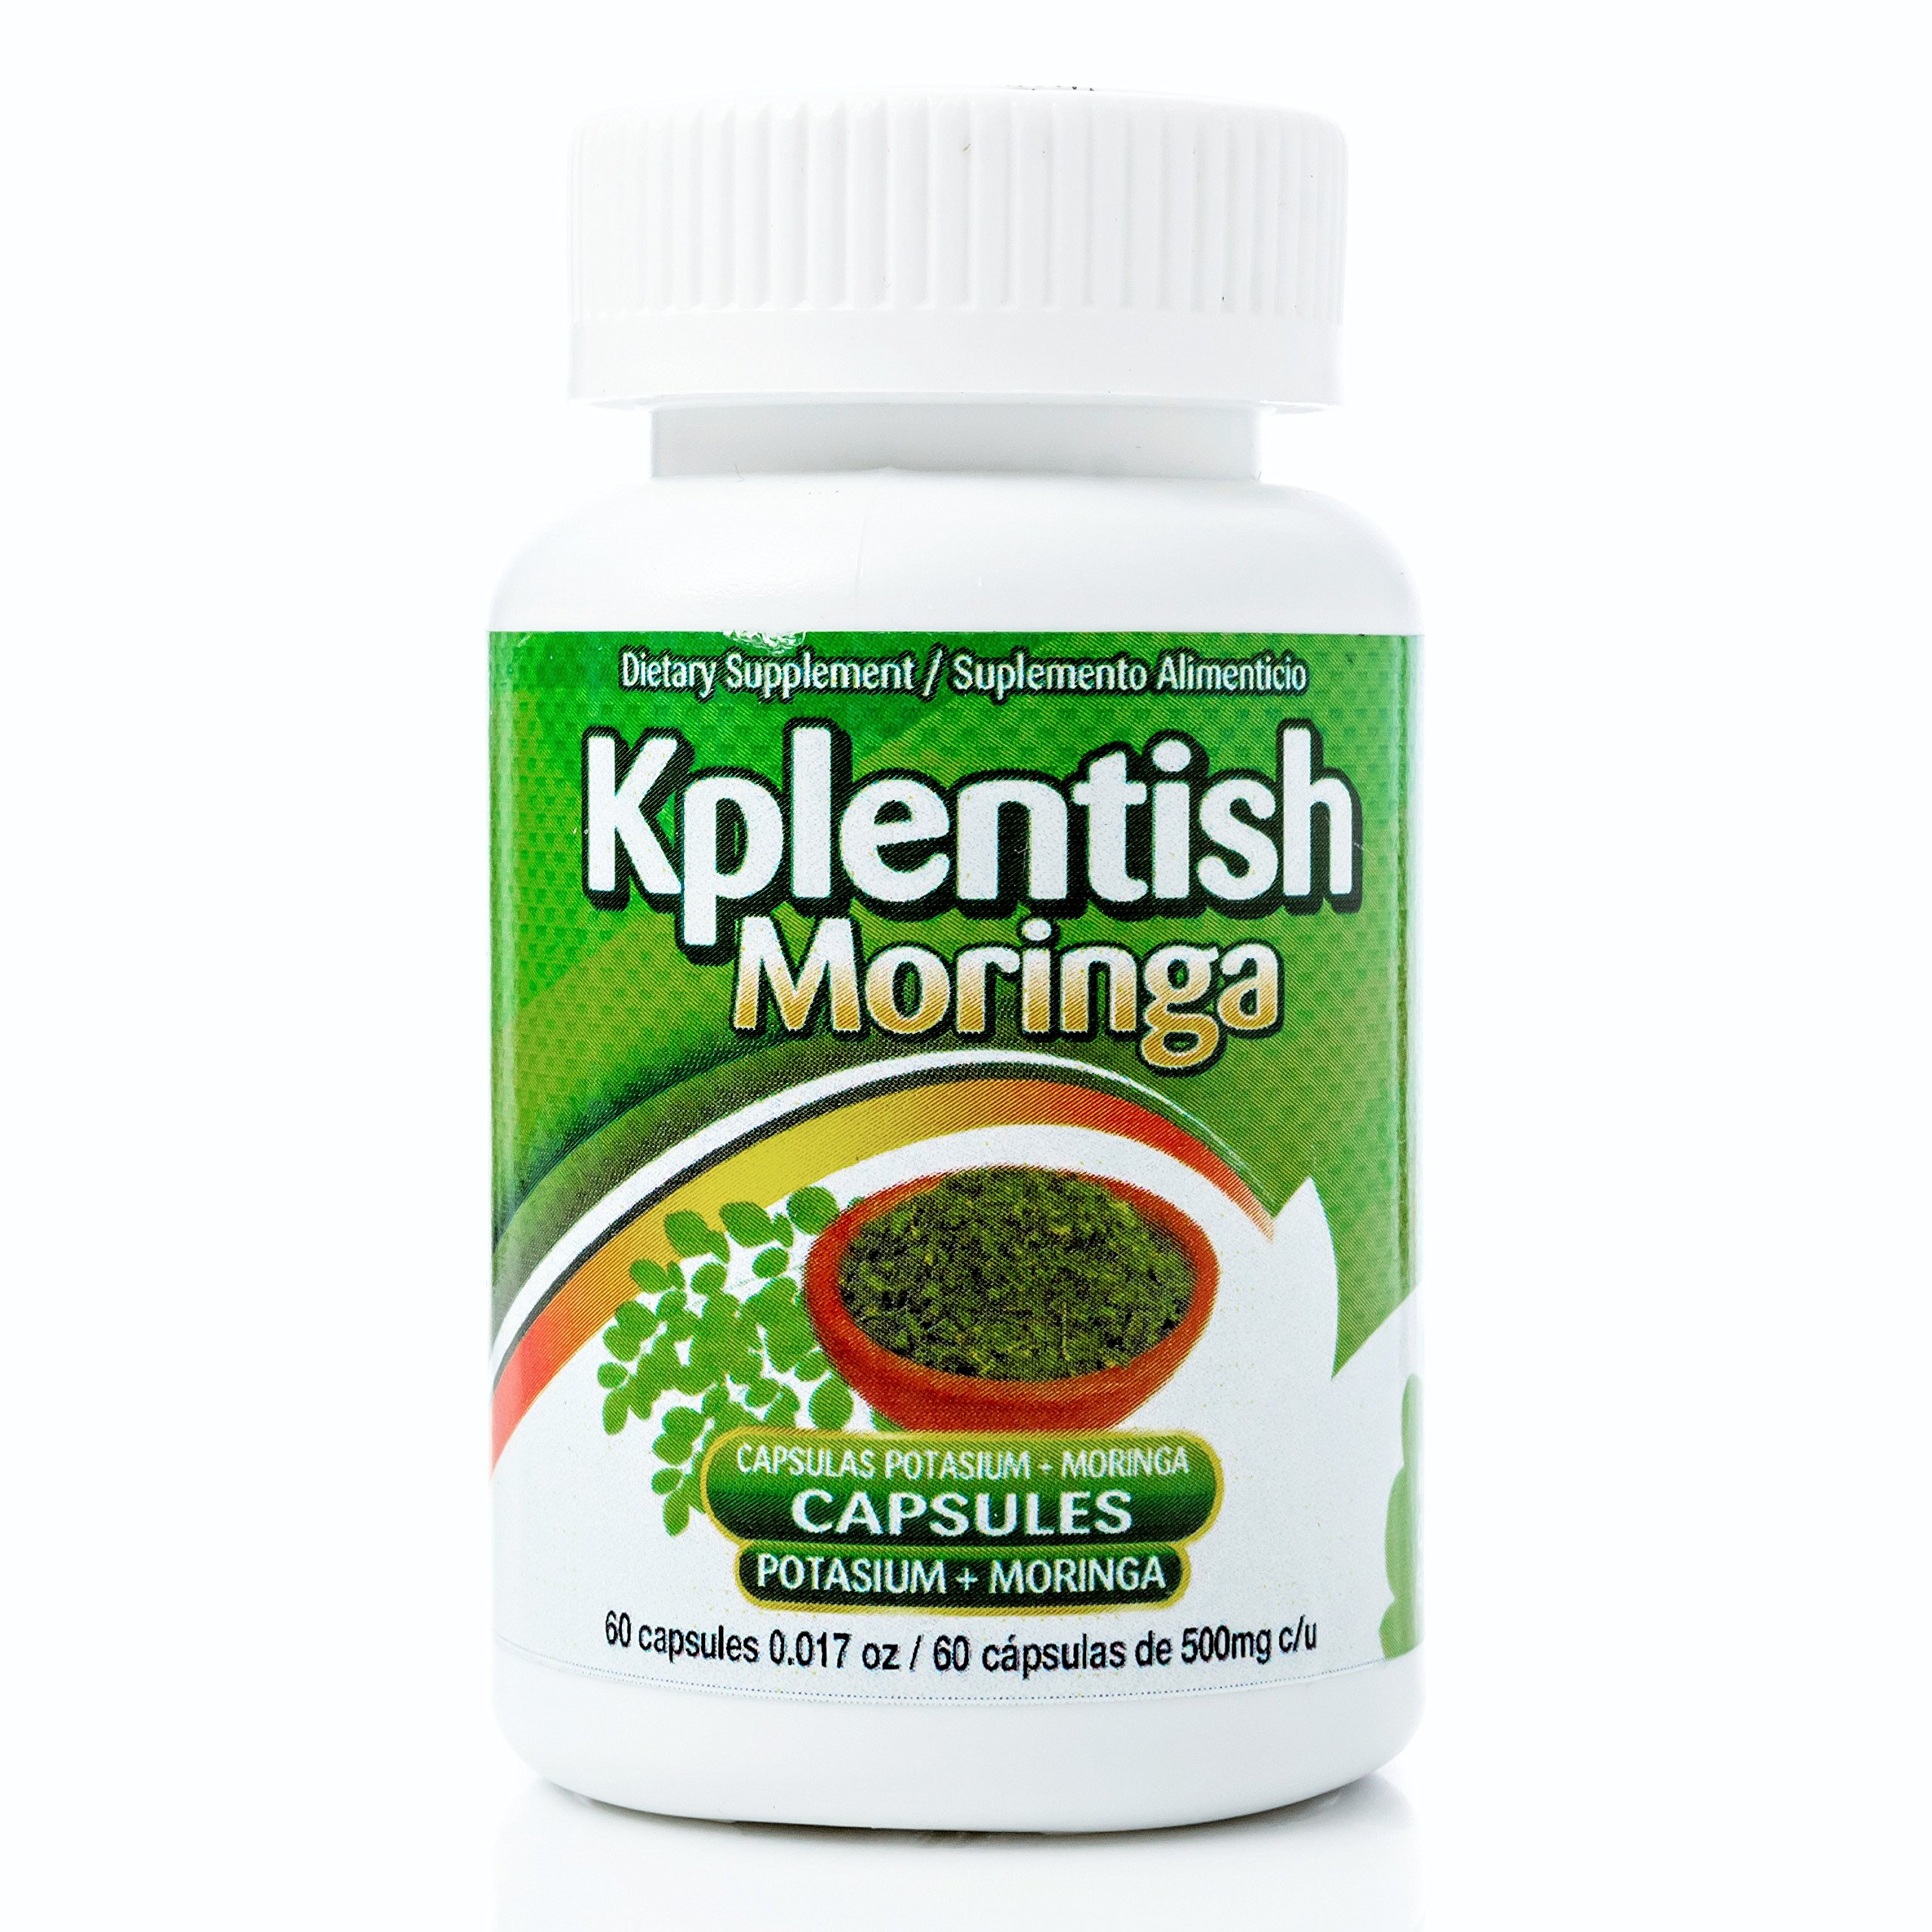 Kplentish Potassium and Moringa Supplement 30 Day Supply combine with Alipotec and Weight Control Supplements